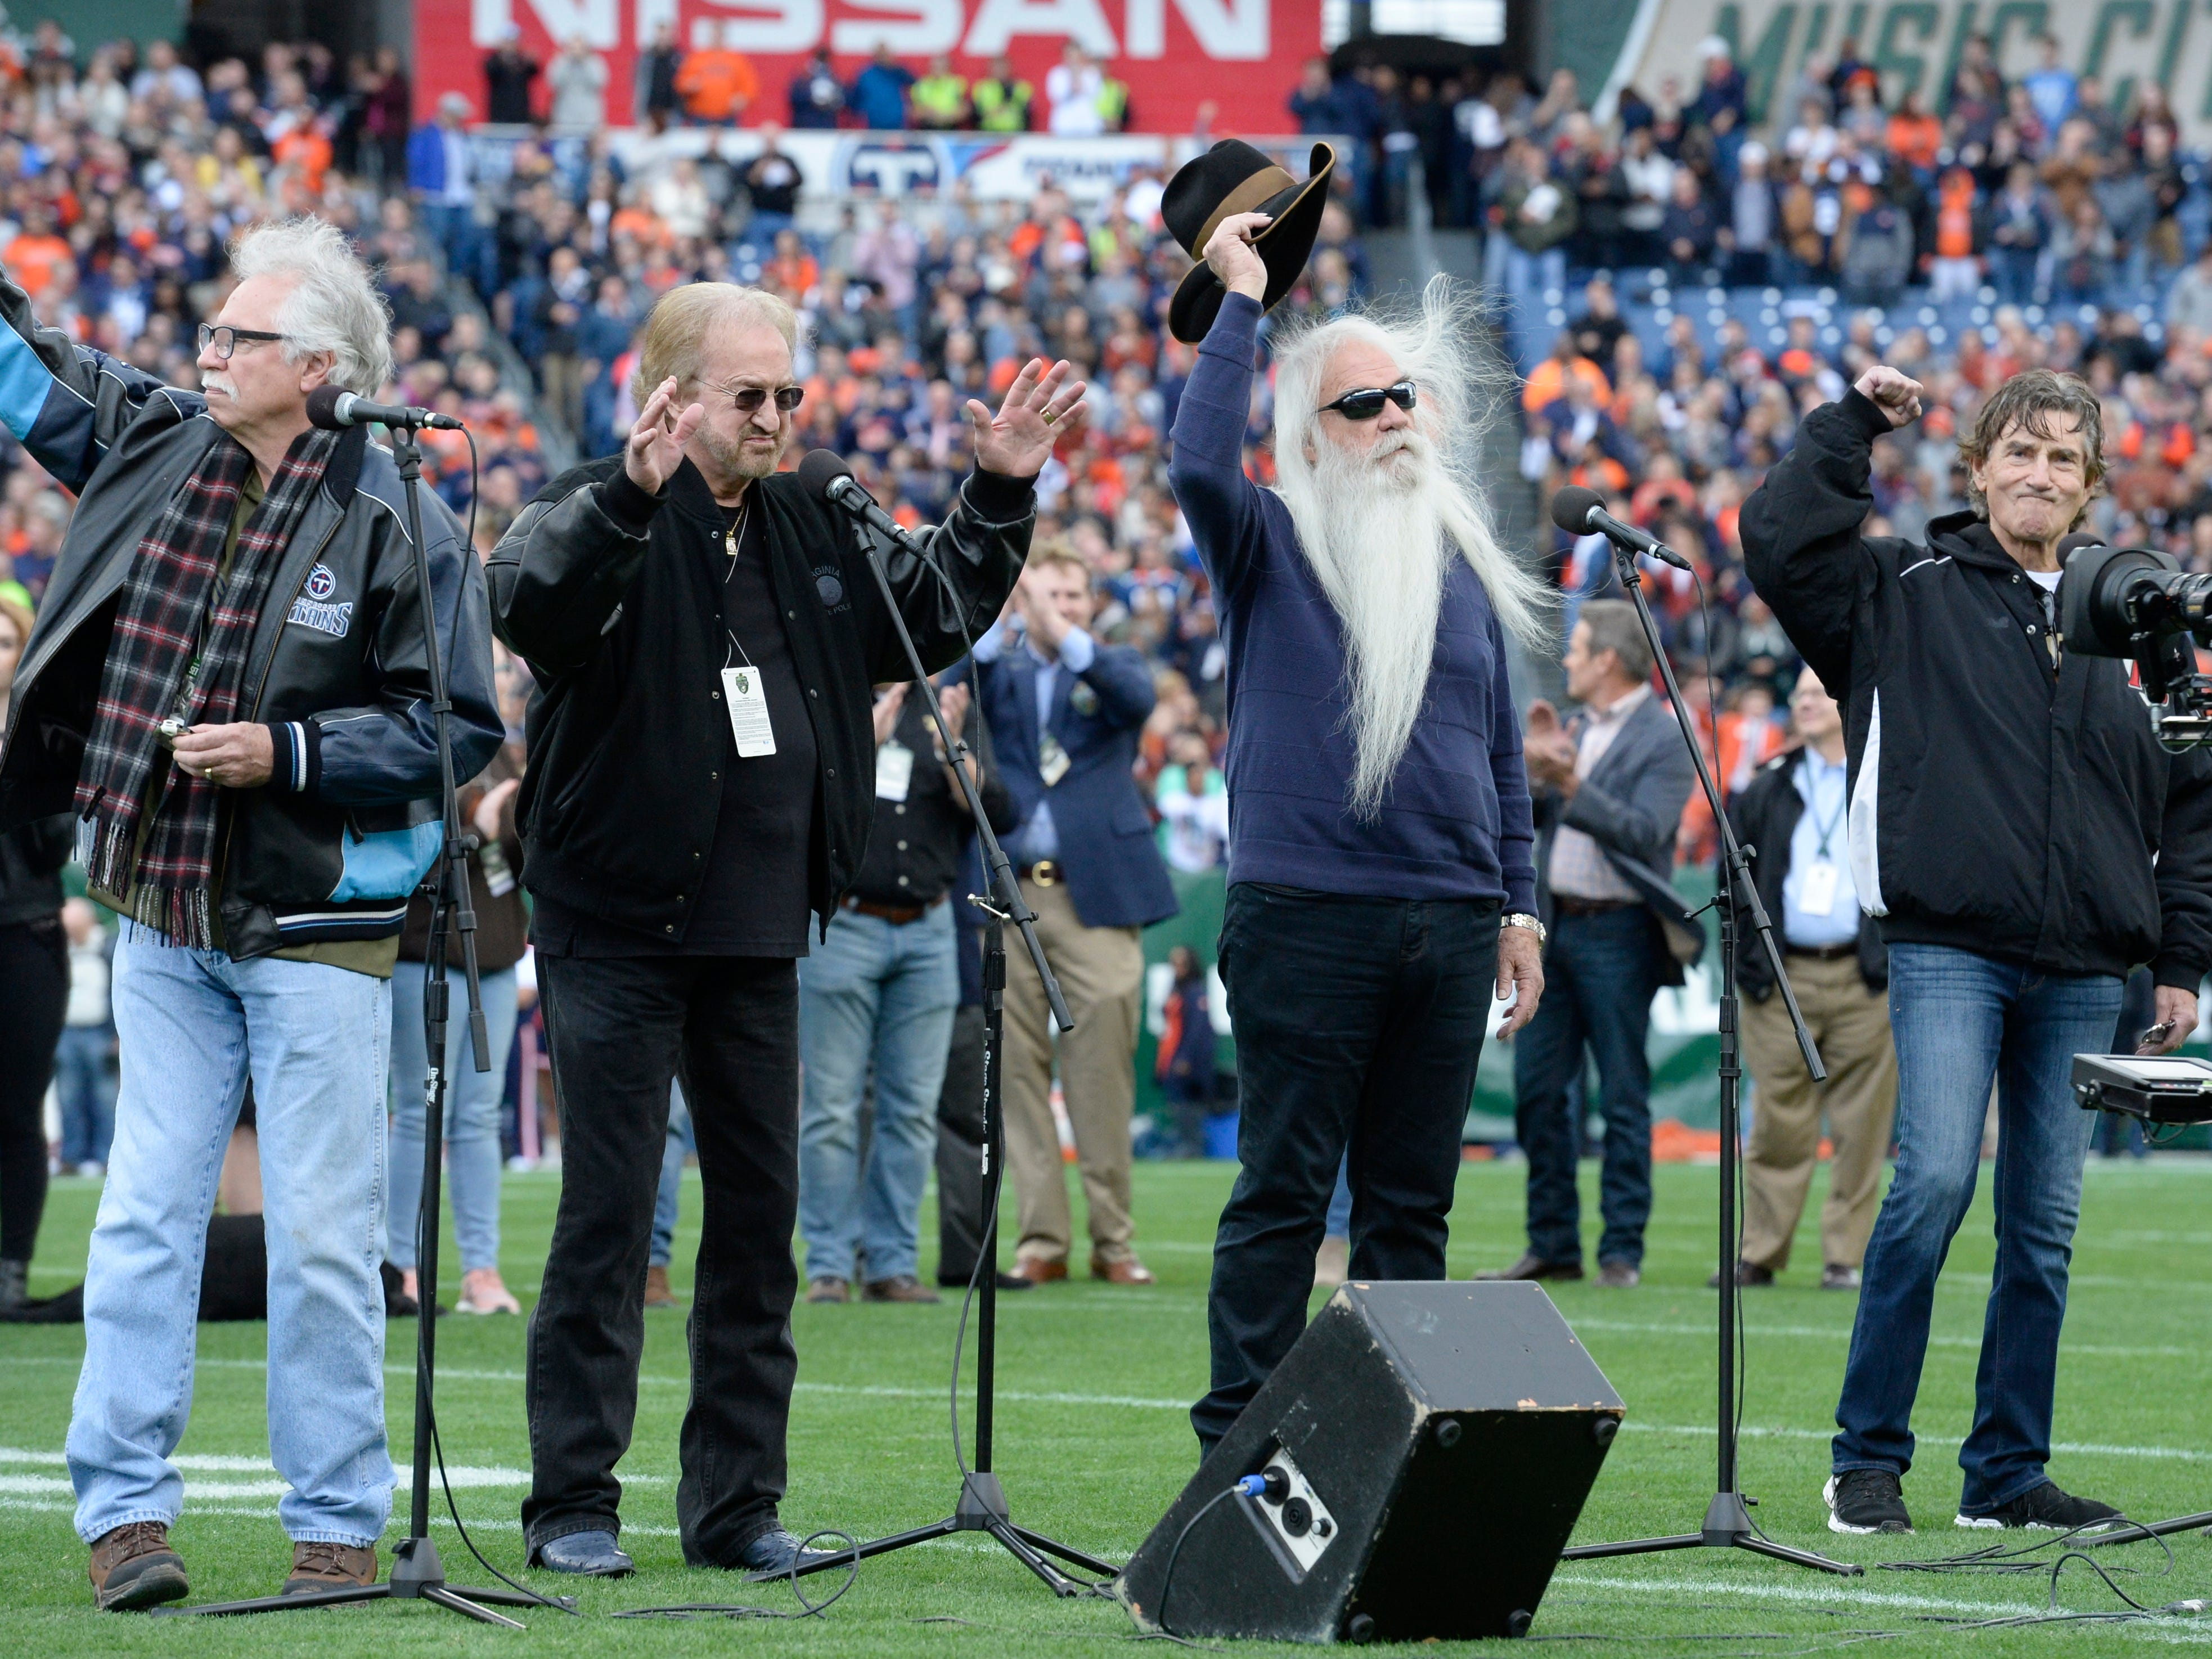 The Oak Ridge Boys sing the National Anthem at the Music City Bowl NCAA college football game Friday, Dec. 28, 2018, at Nissan Stadium in Nashville, Tenn.